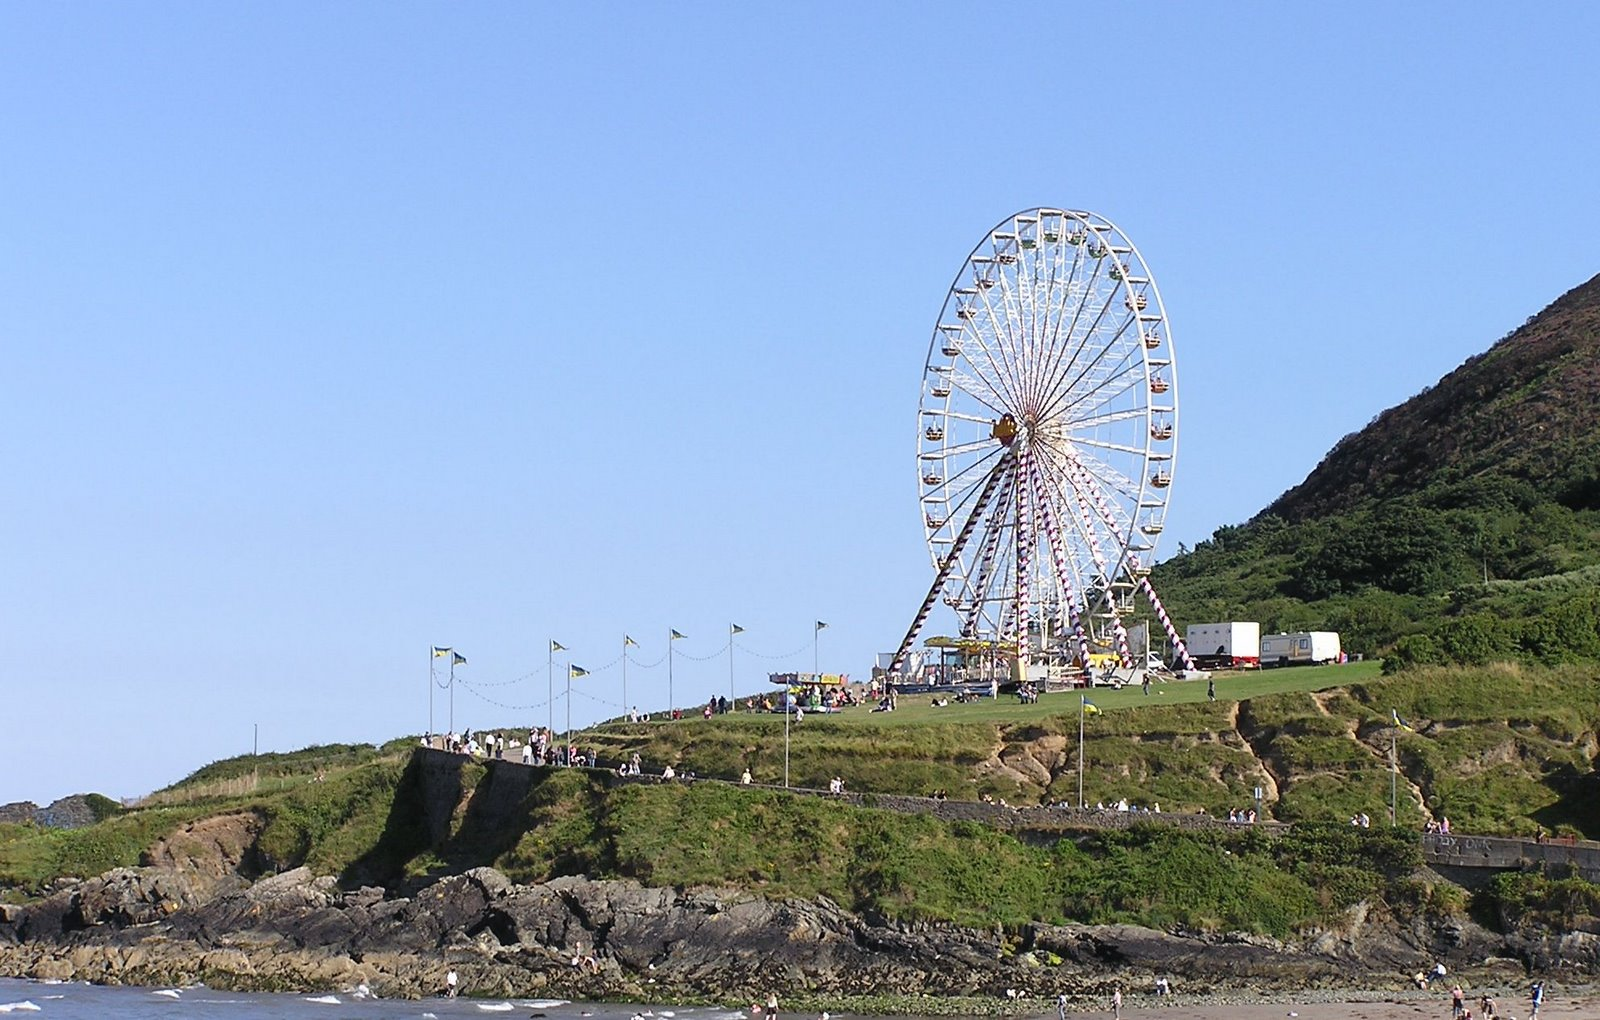 ferris wheel at Bray, Ireland